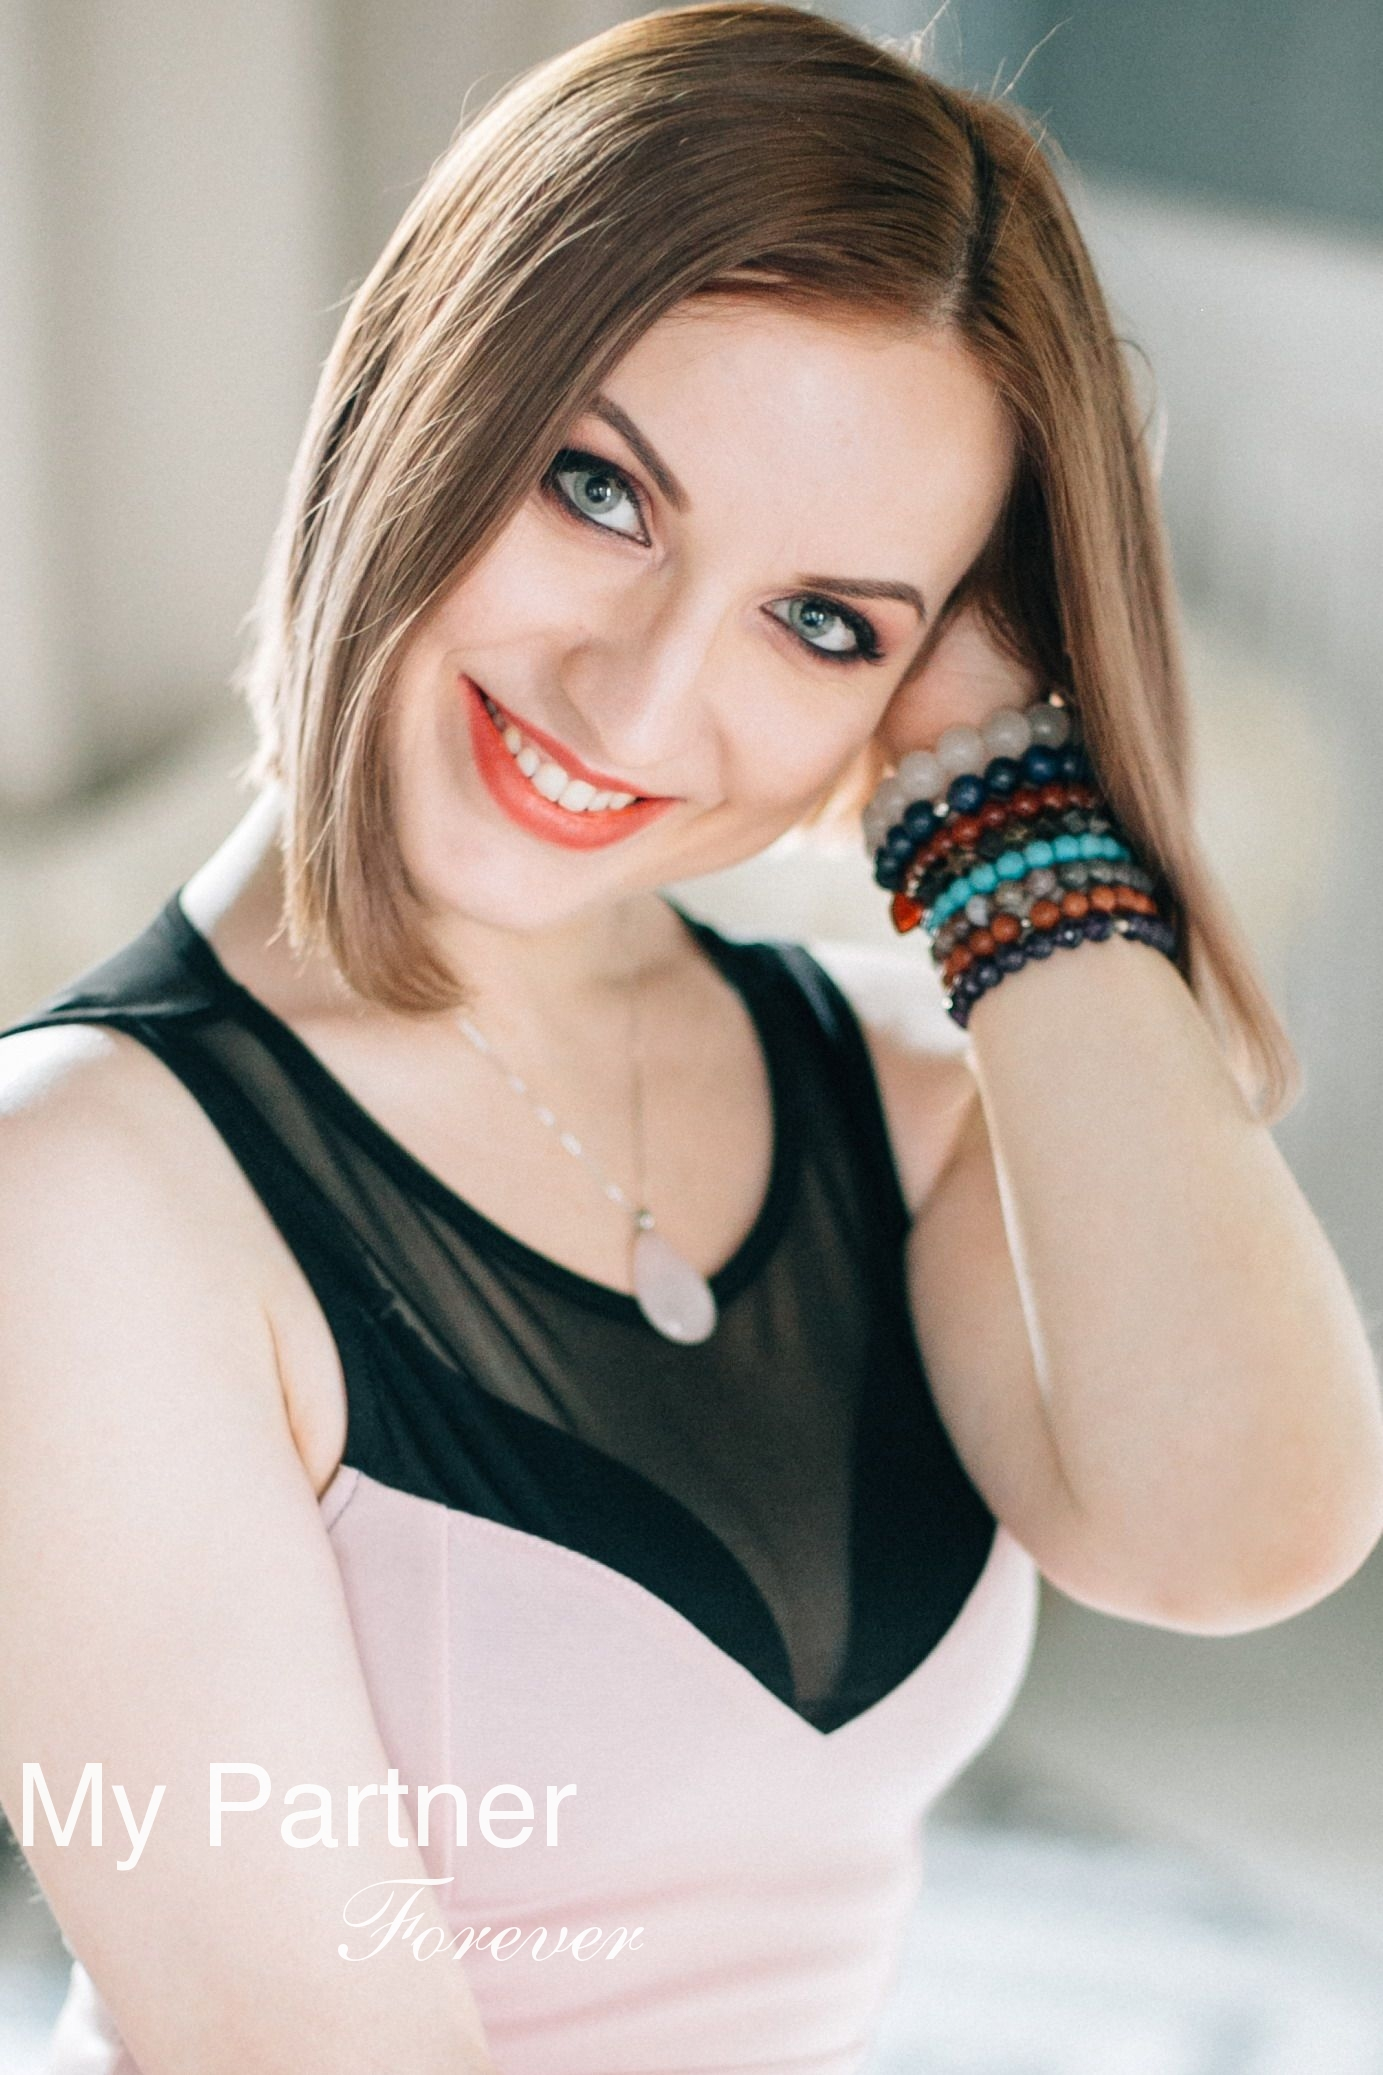 Datingsite to Meet Sexy Belarusian Girl Alina from Grodno, Belarus